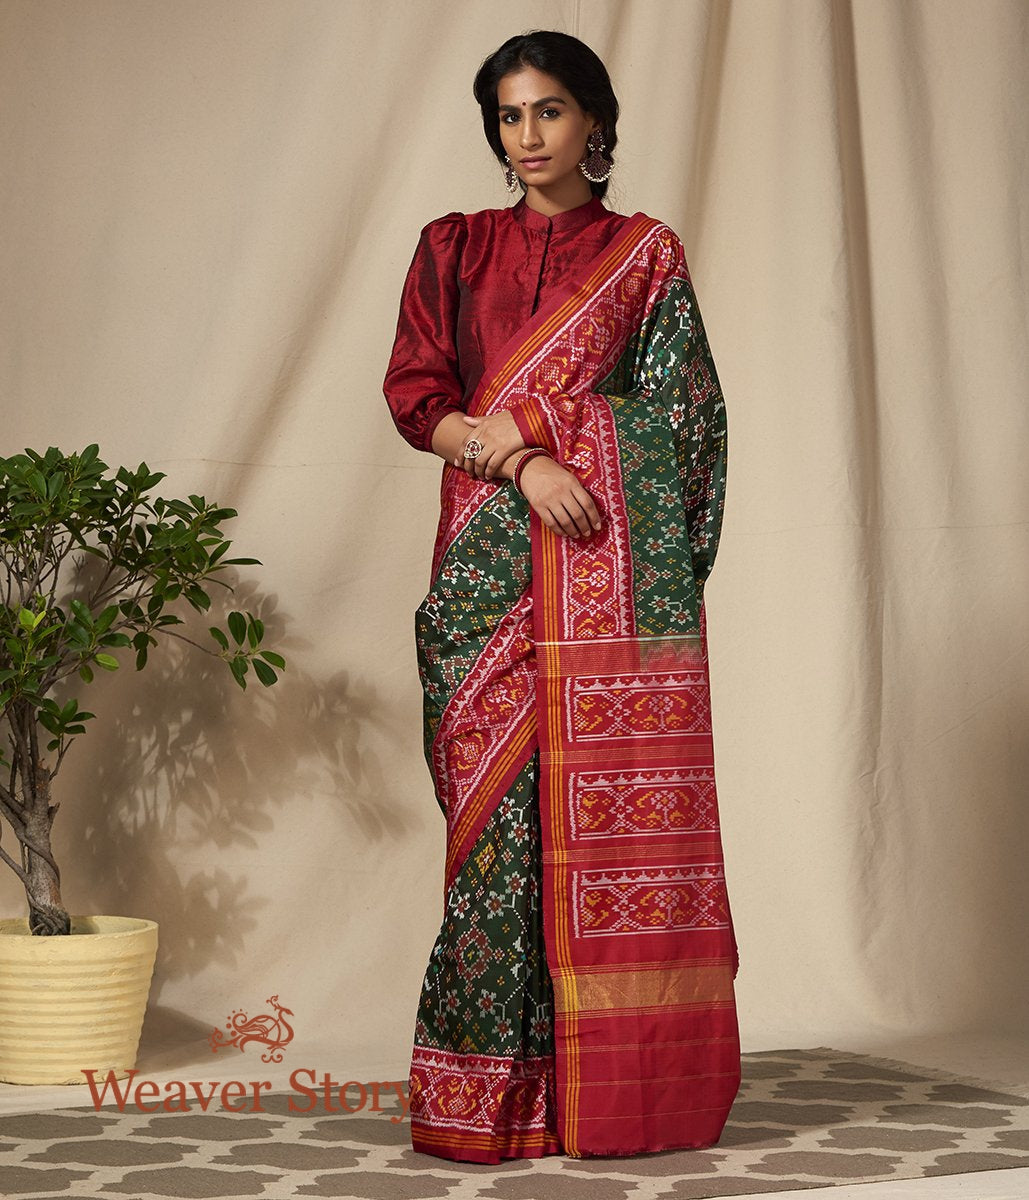 Handwoven Green Gujarat Patola Saree with Red Border